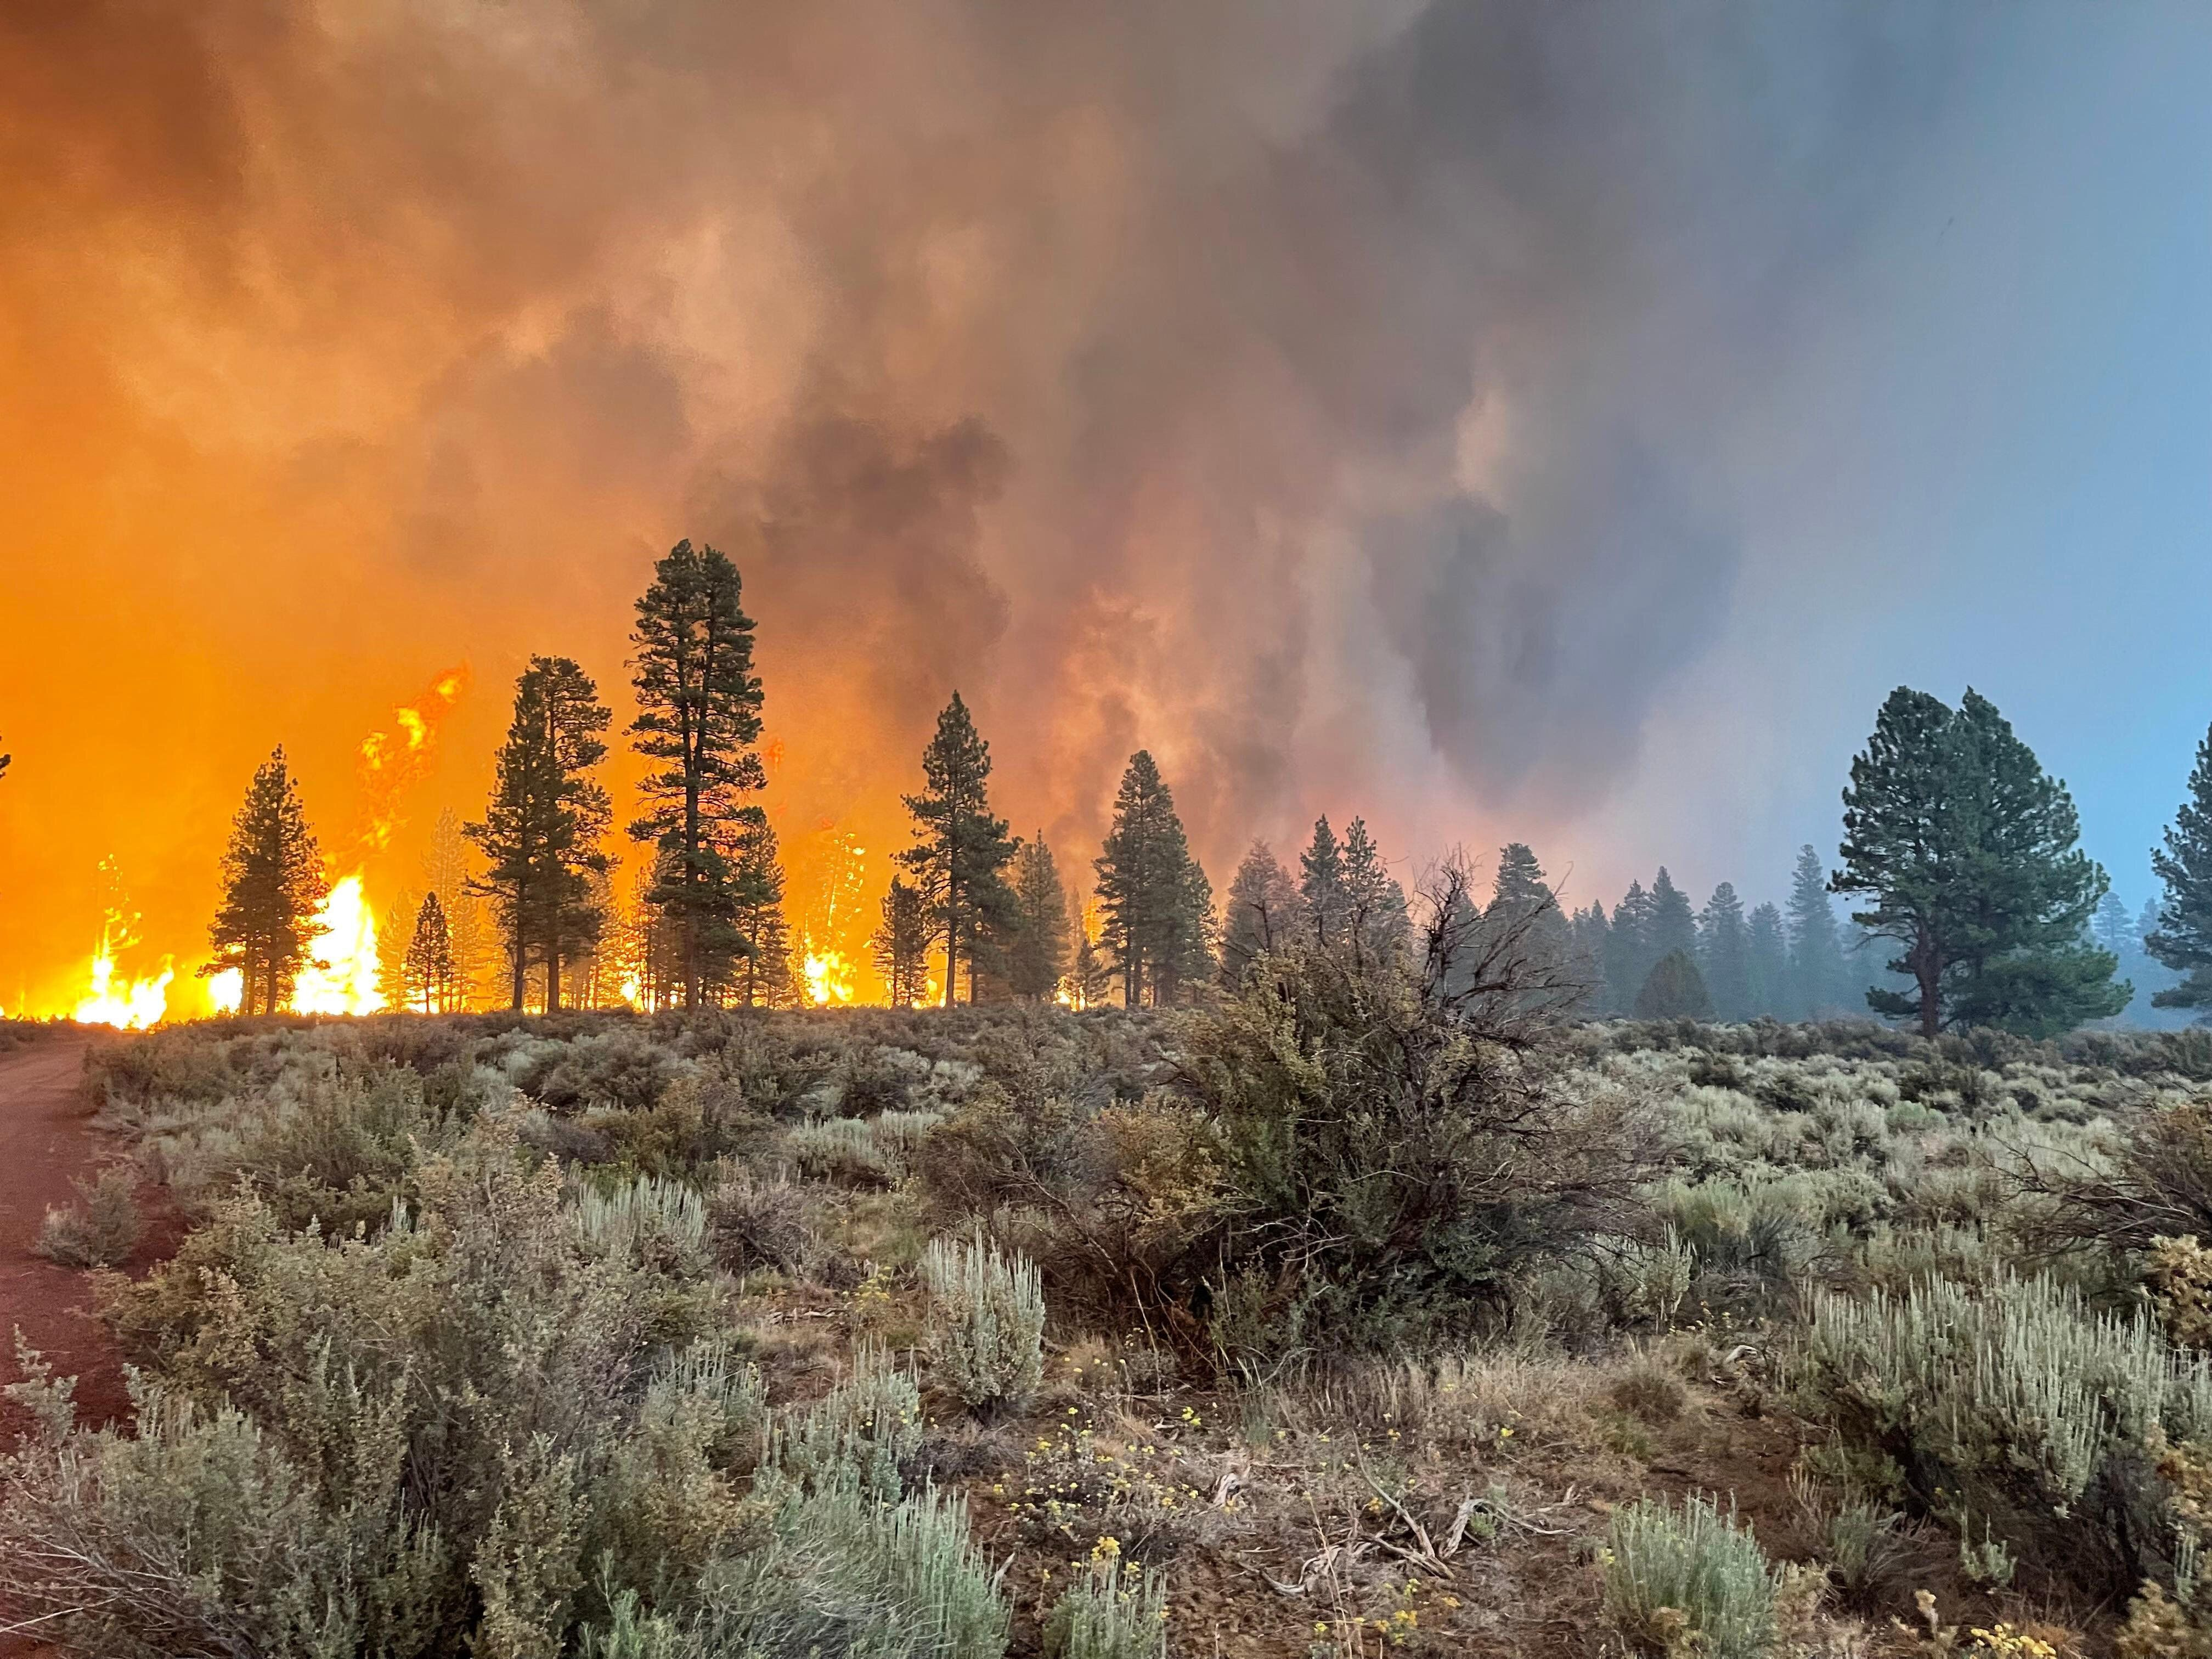 In this handout provided by the USDA Forest Service, the Bootleg Fire burns on July 12 in Bly, Oregon. The Bootleg Fire has s